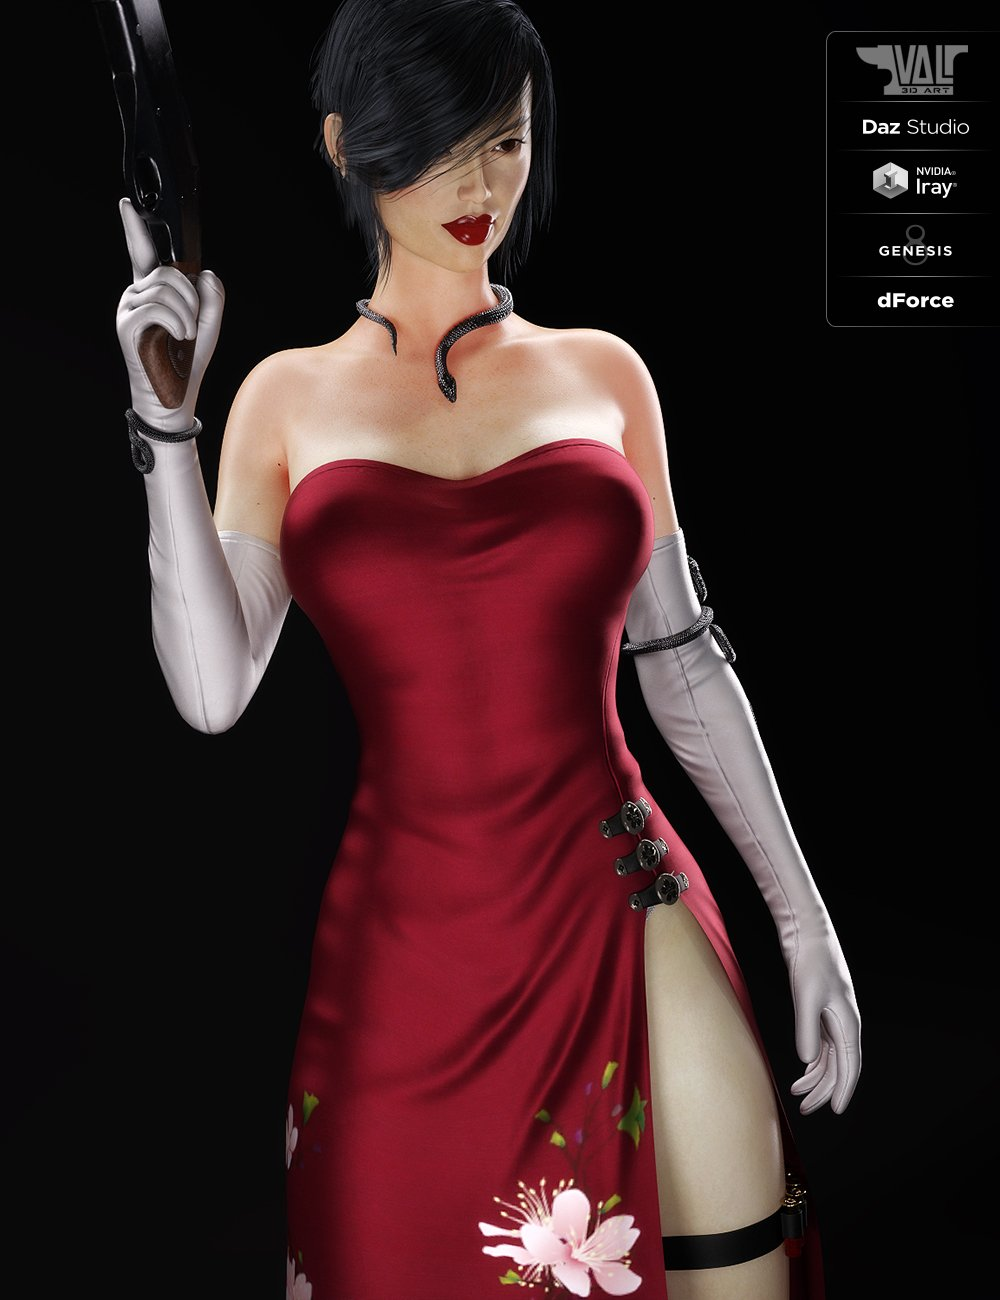 dForce Nicole Agent Outfit for Genesis 8 Female(s) by: Val3dart, 3D Models by Daz 3D